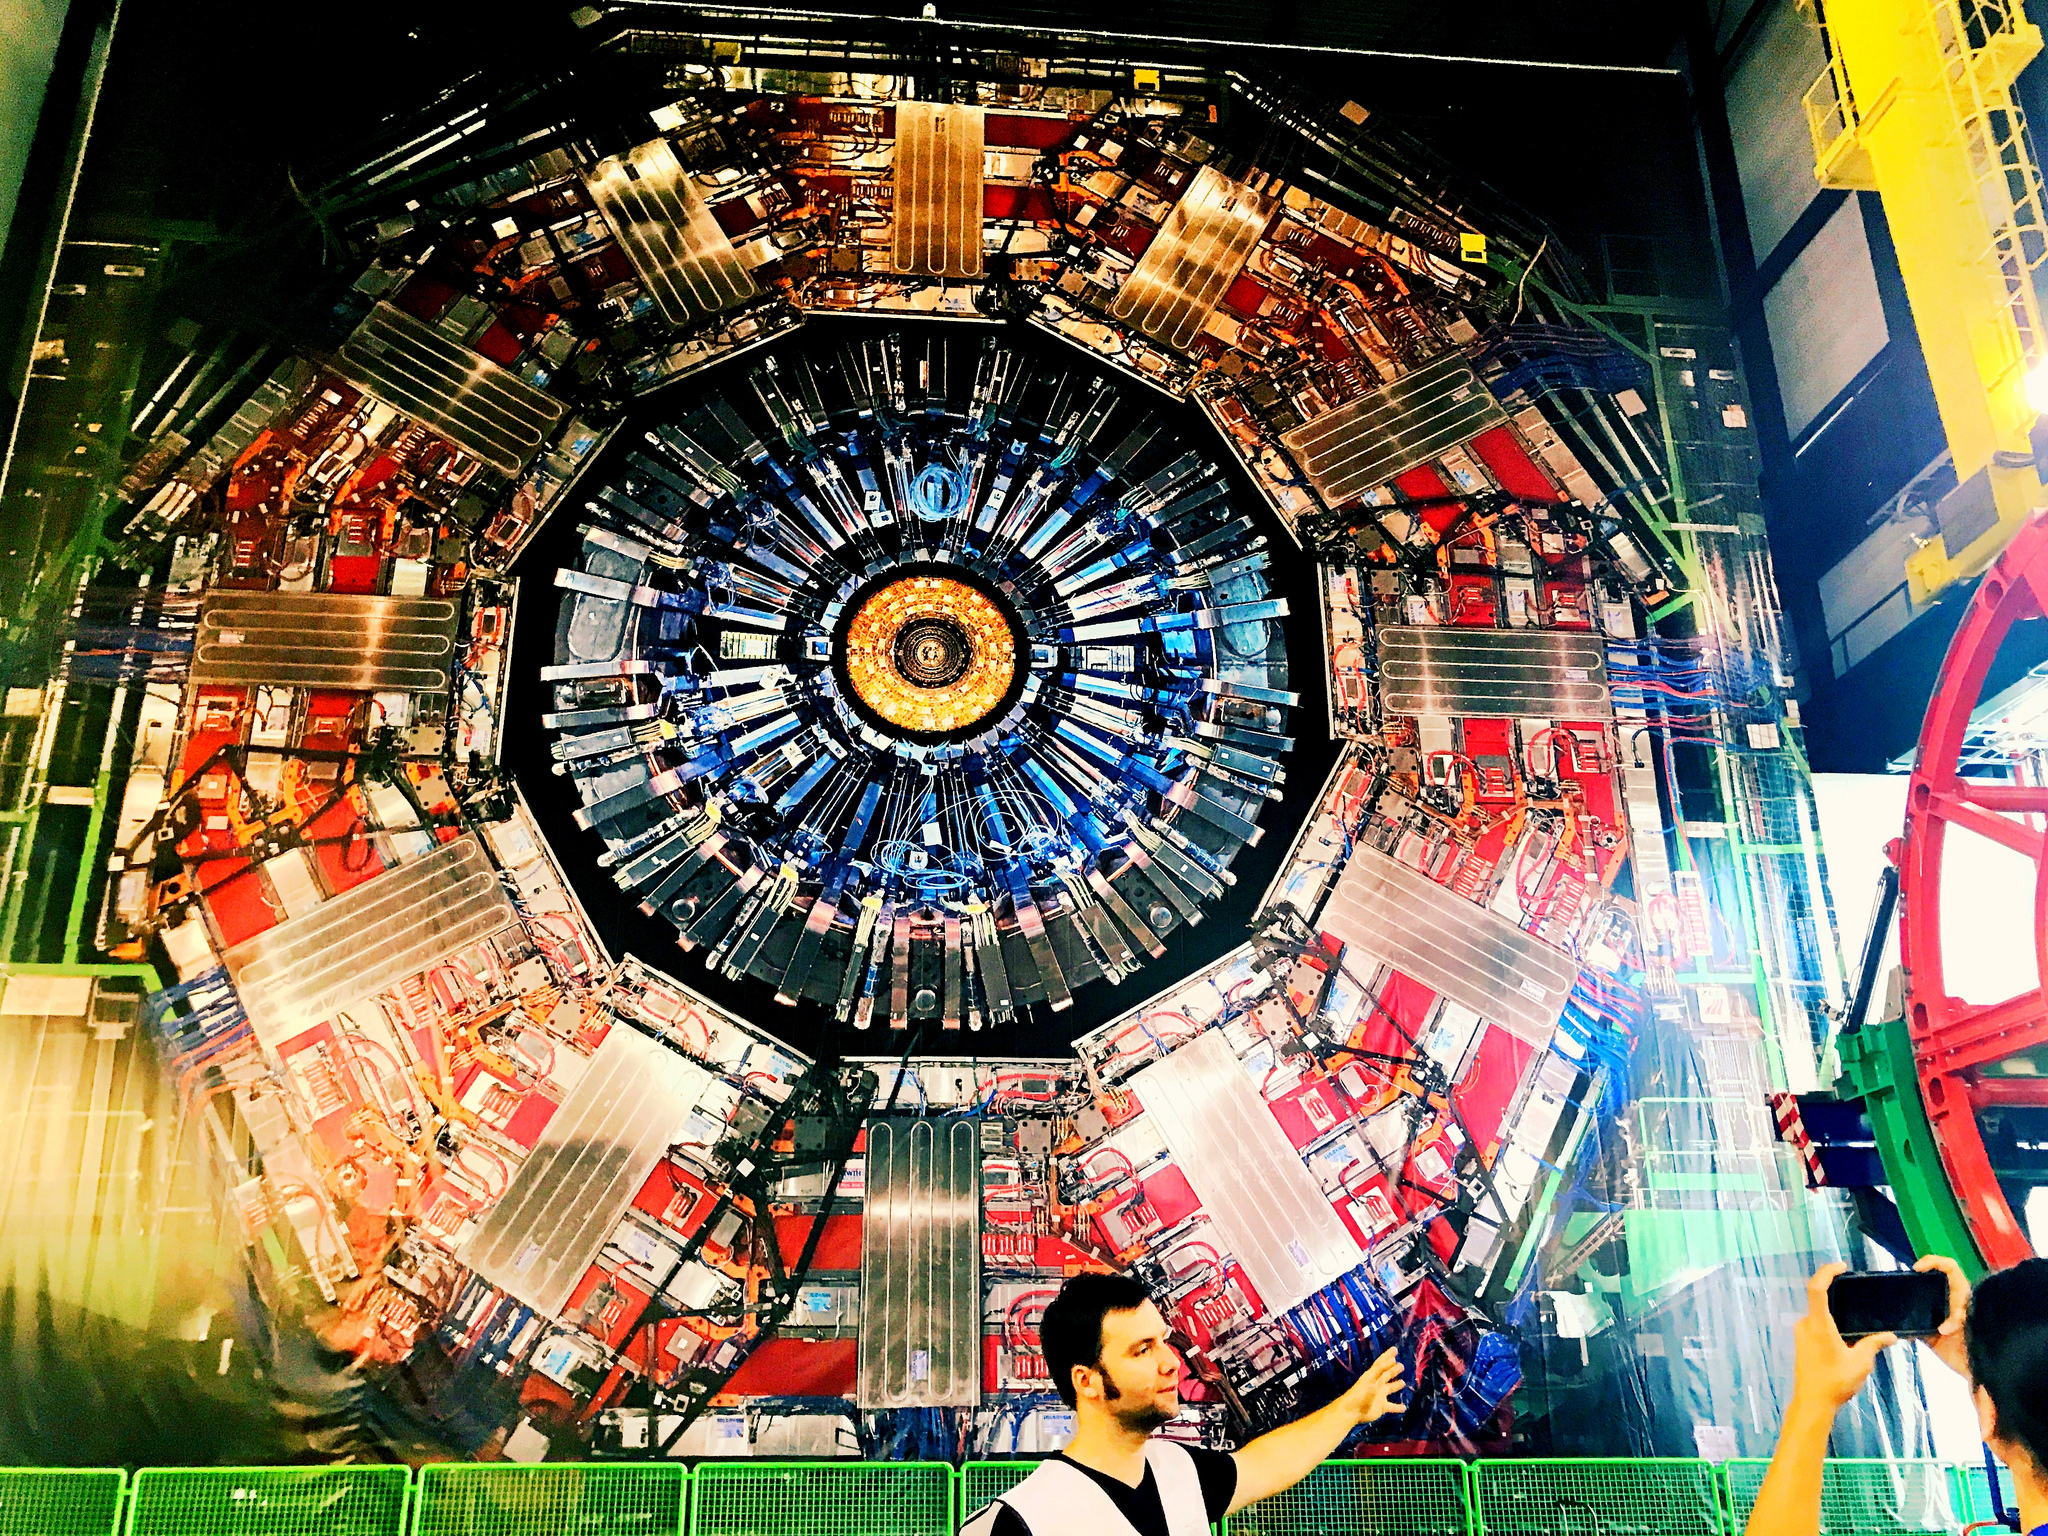 Physics is studied here at CERN: CMS.